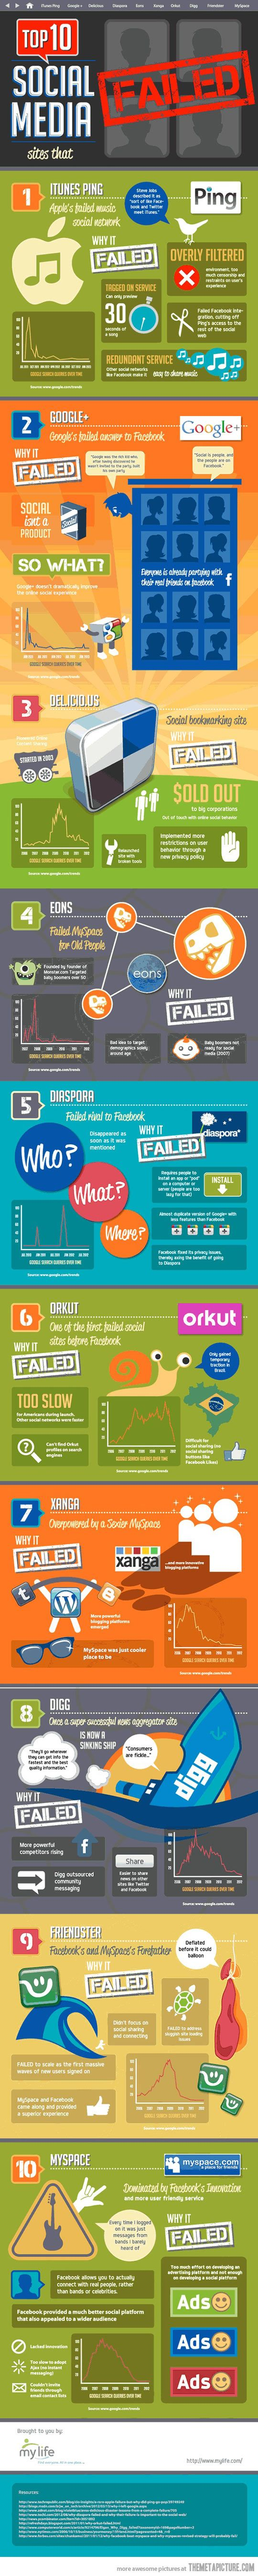 Top 10 biggest social websites that failed miserably. (I think Google+ and MySpace could still come back, but who knows.)